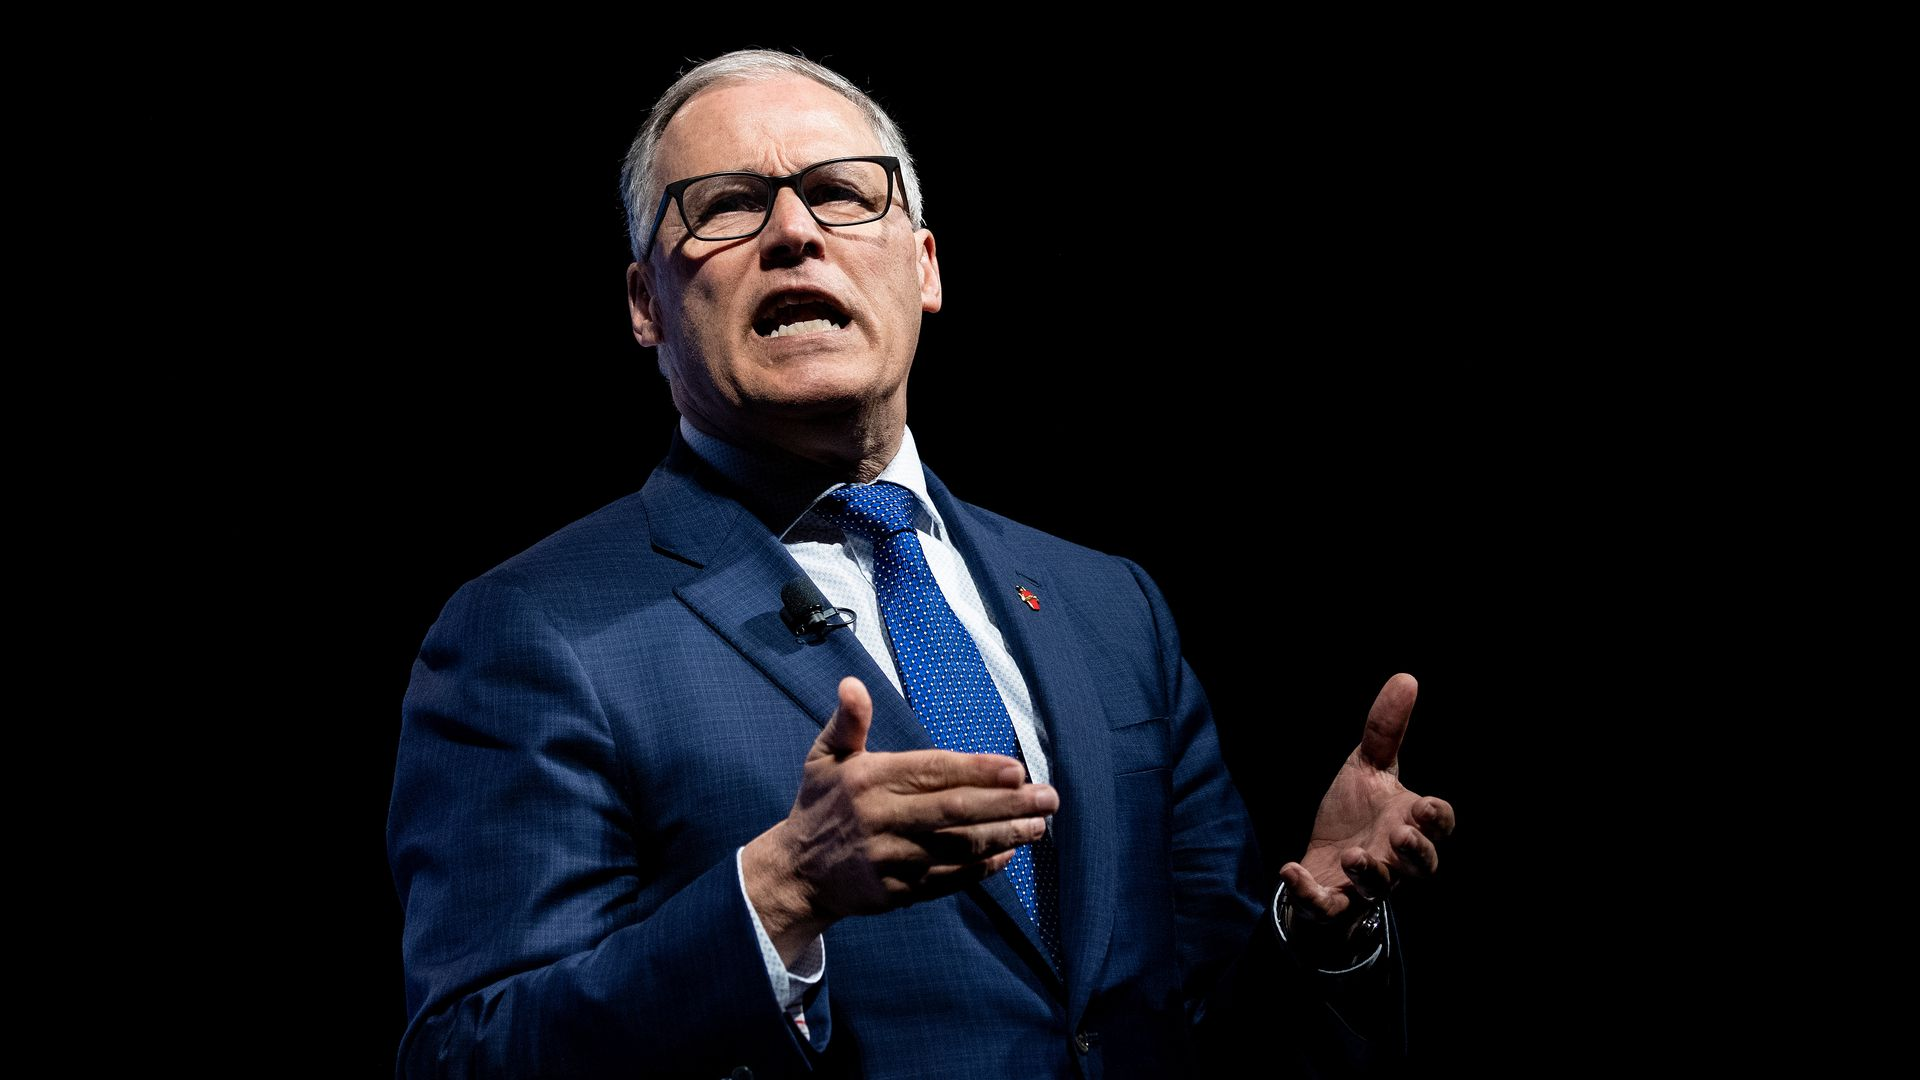 In this image, Jay Inslee speaks in a suit and tie while gesturing both hands.